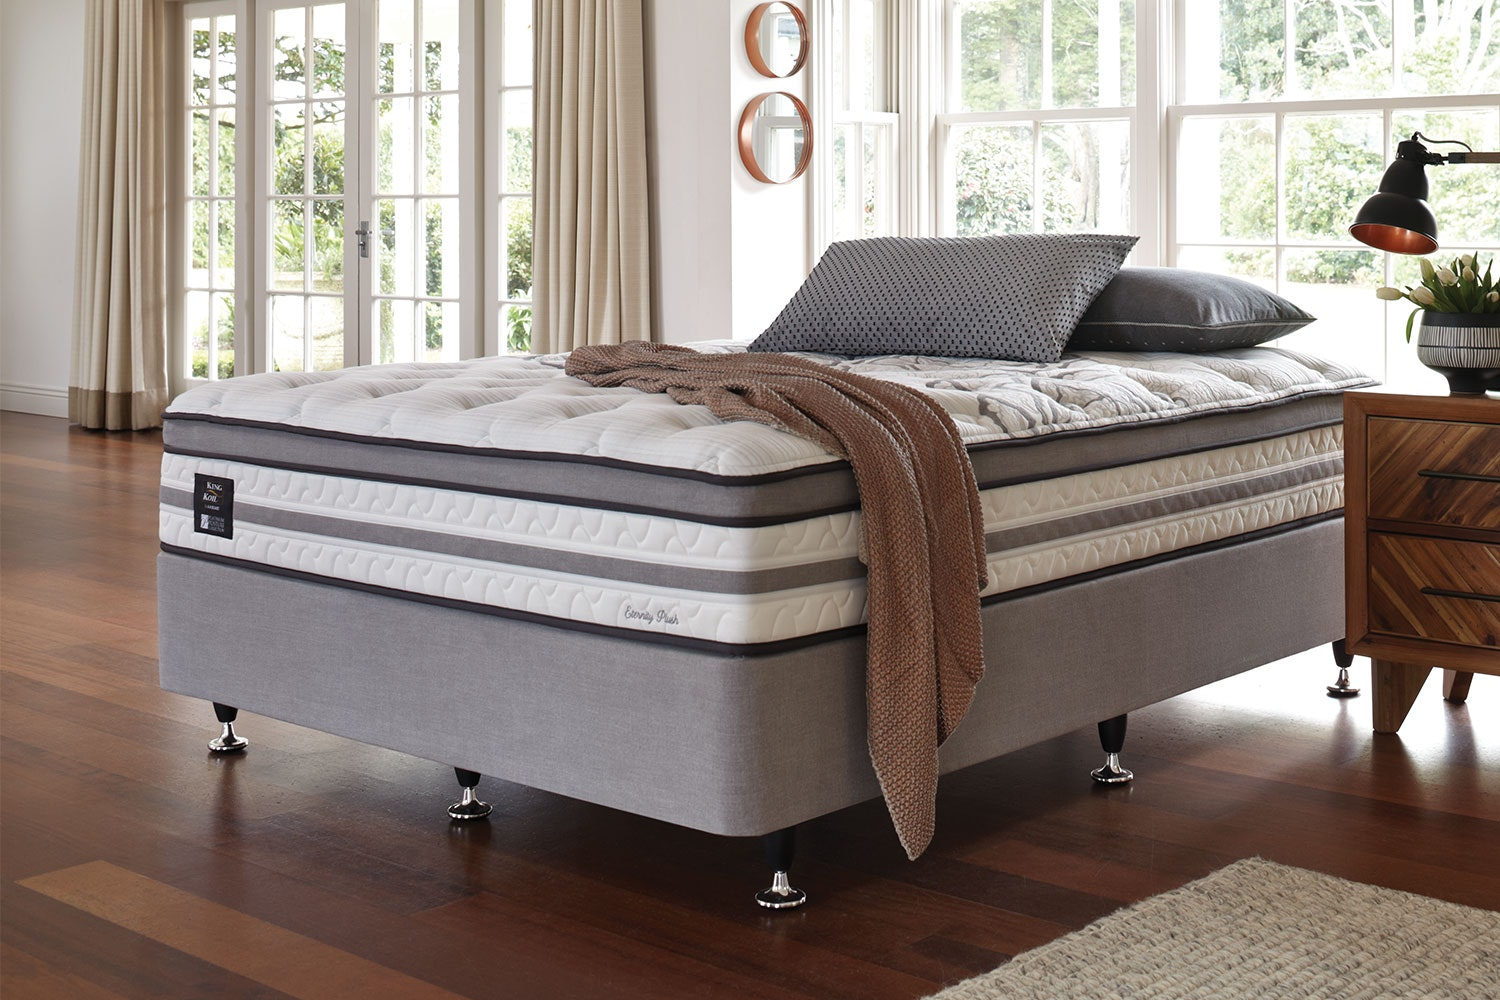 Eternity Plush King Bed by King Koil